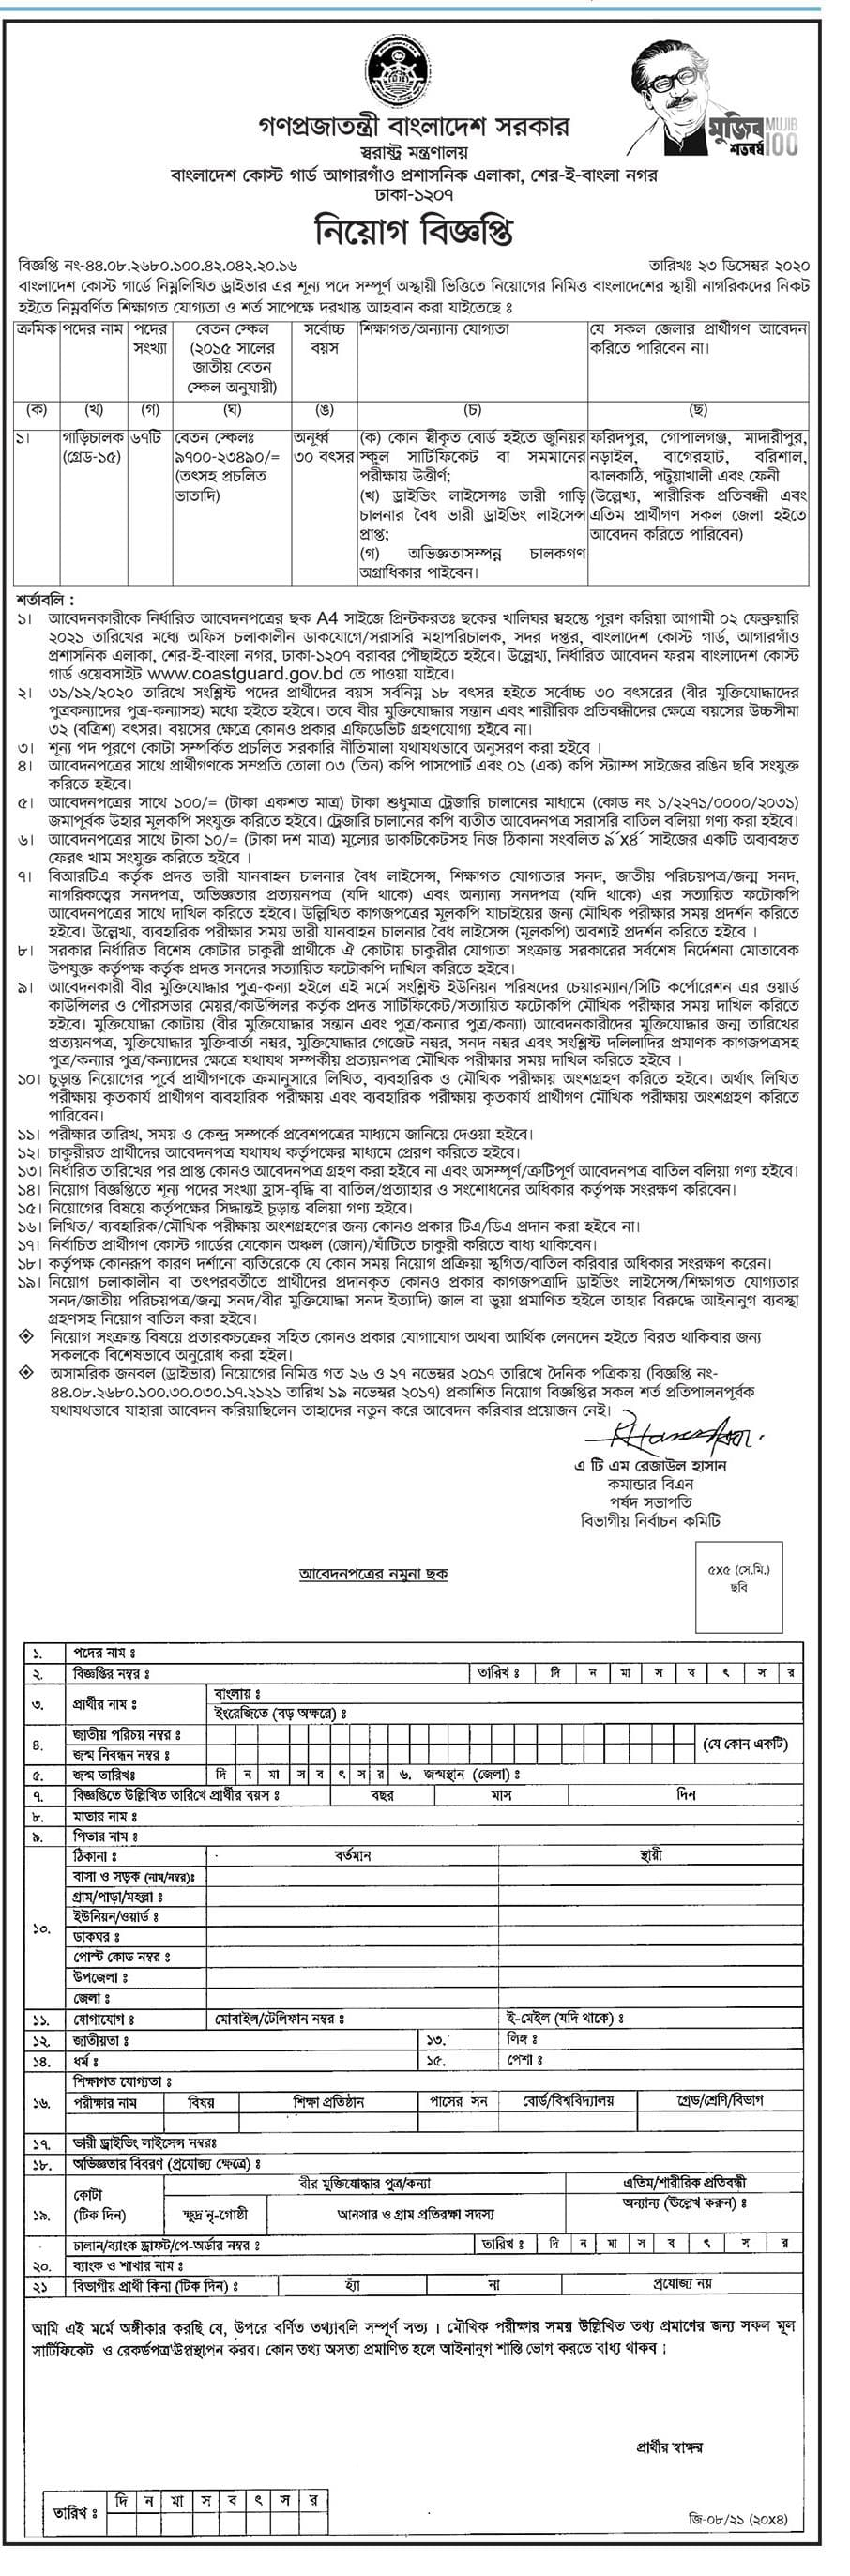 Bangladesh Coast Guard BCGF Job Circular